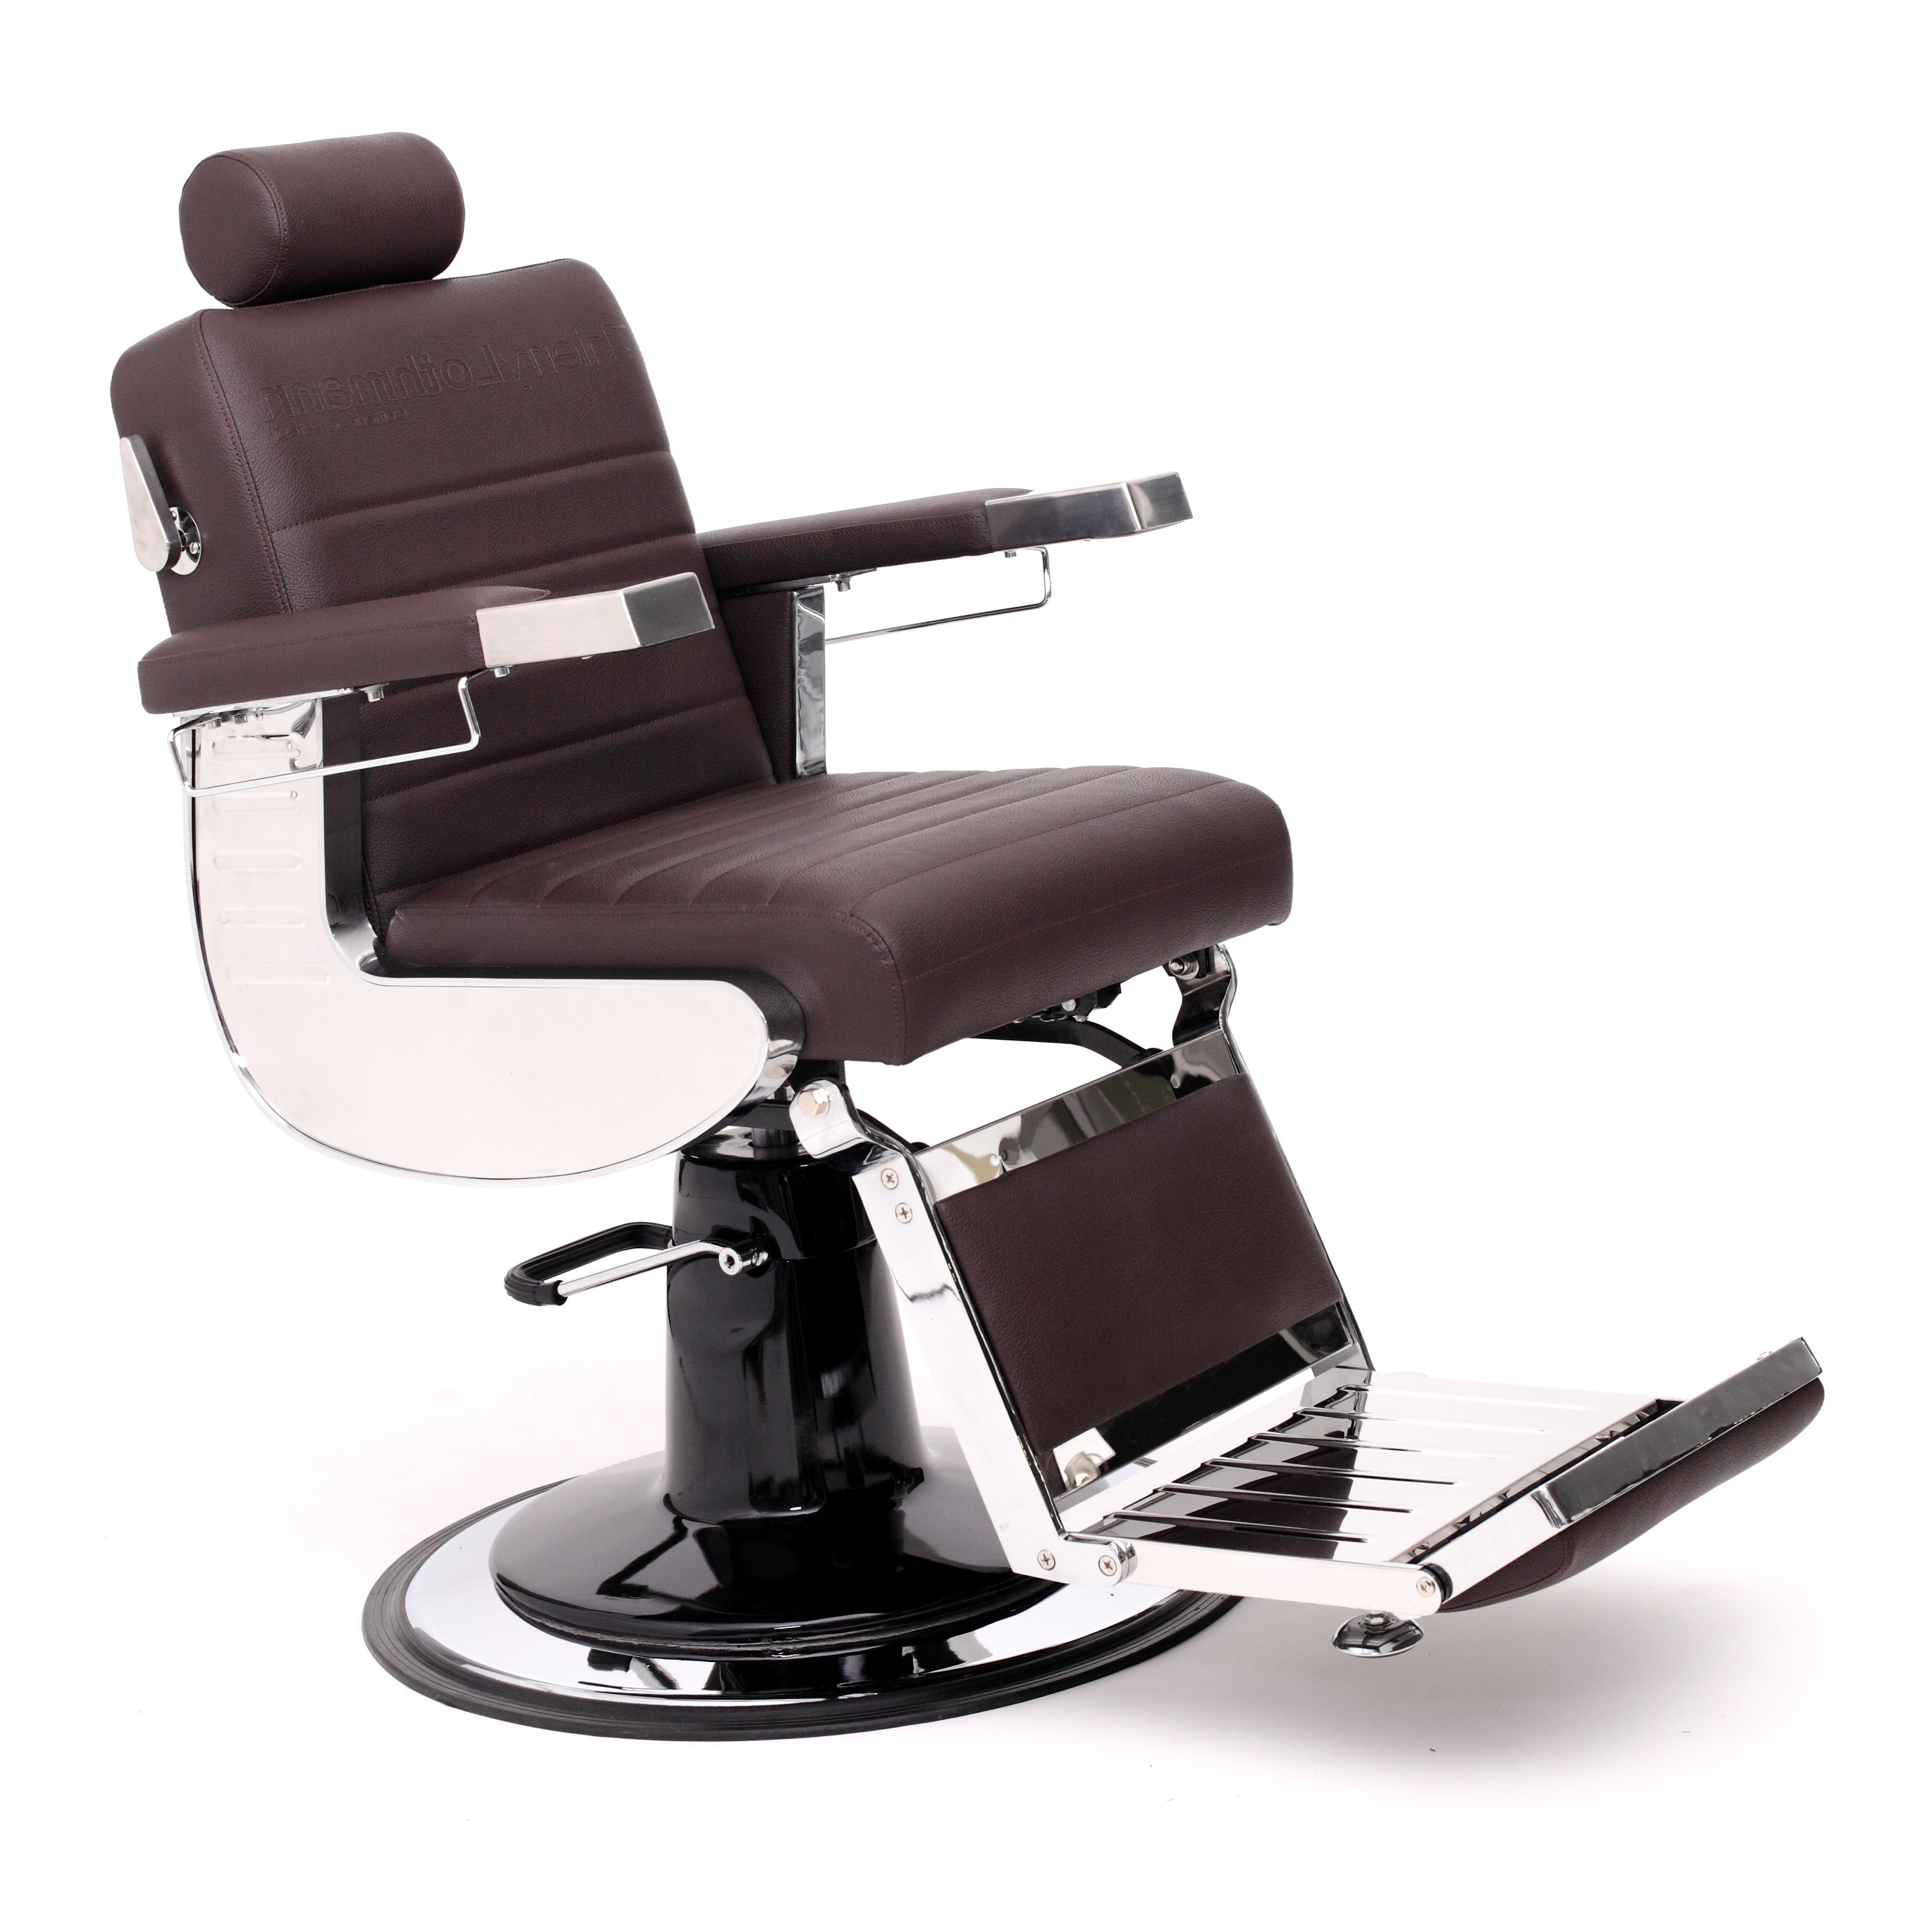 Belmont Barber Chair For Sale Novvo Etopa Cindarella Heros Barber Chair